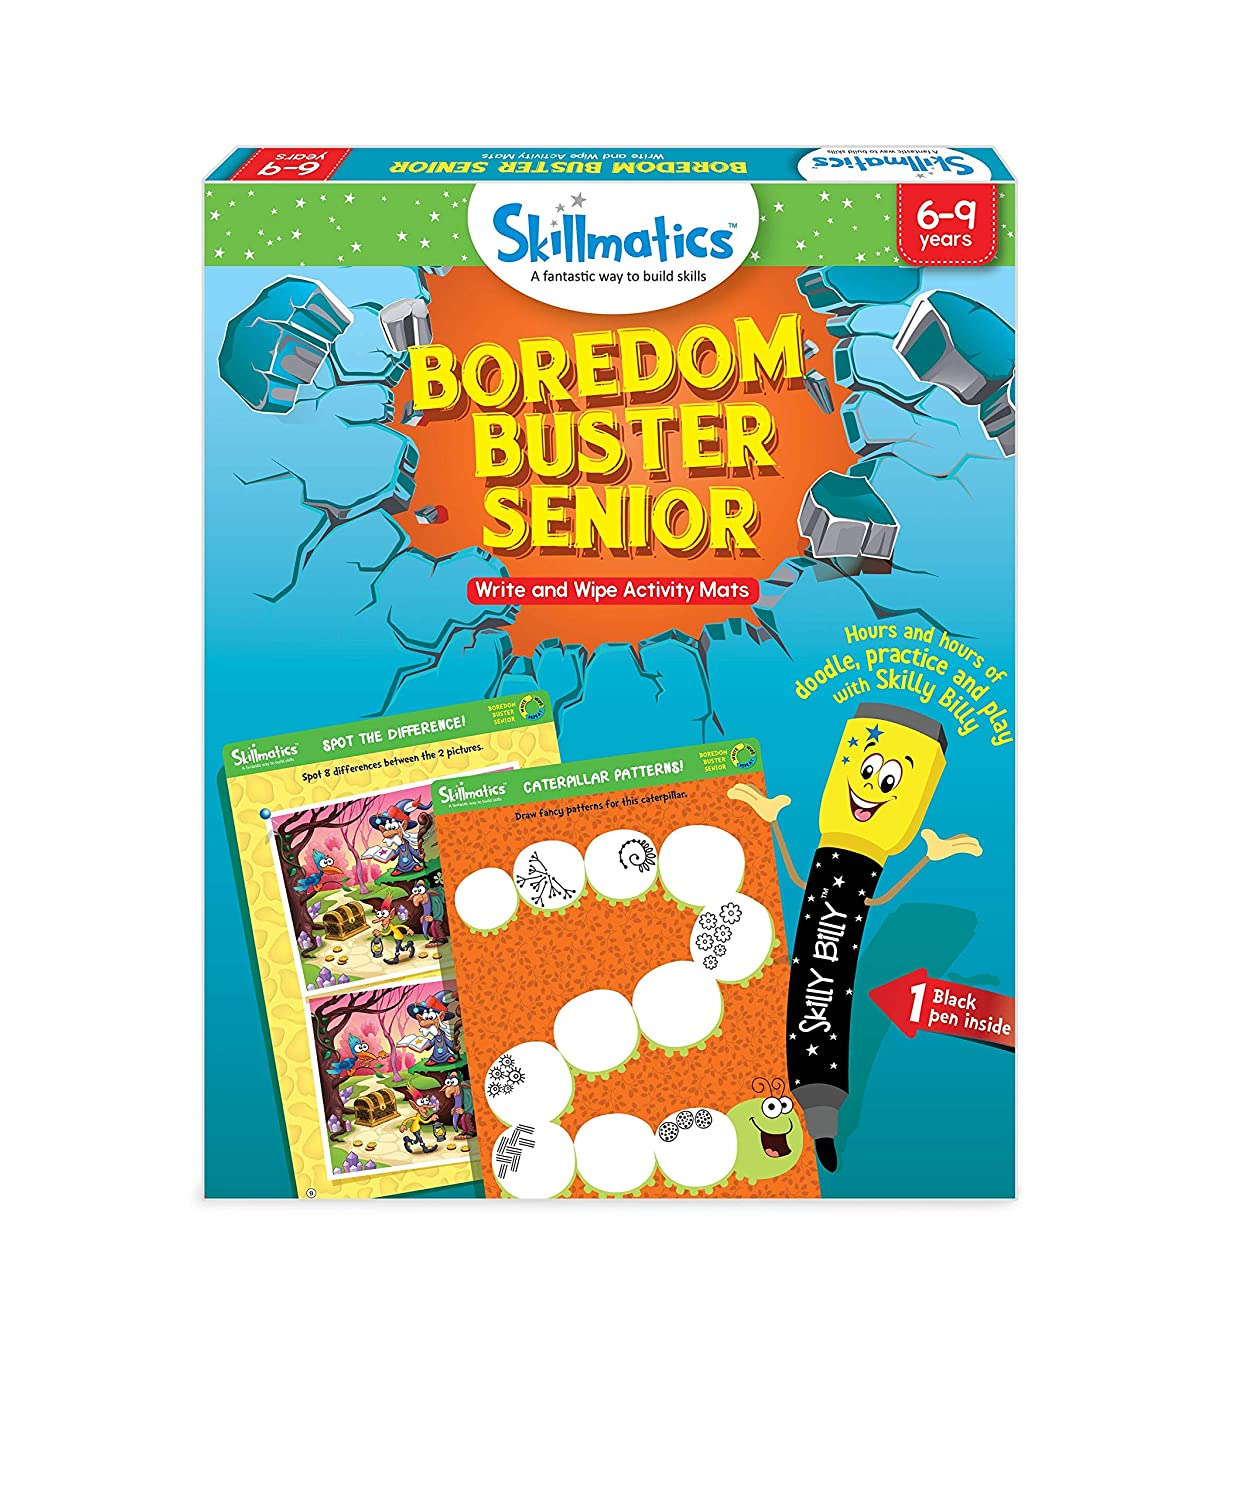 Skillmatics Educational Game: Boredom Buster Senior 6-9 Years| STEM Learning | Creative Fun Activities|Gift Boys Girls Kids Ages 6 to 9 Years Parksons Packaging Limited